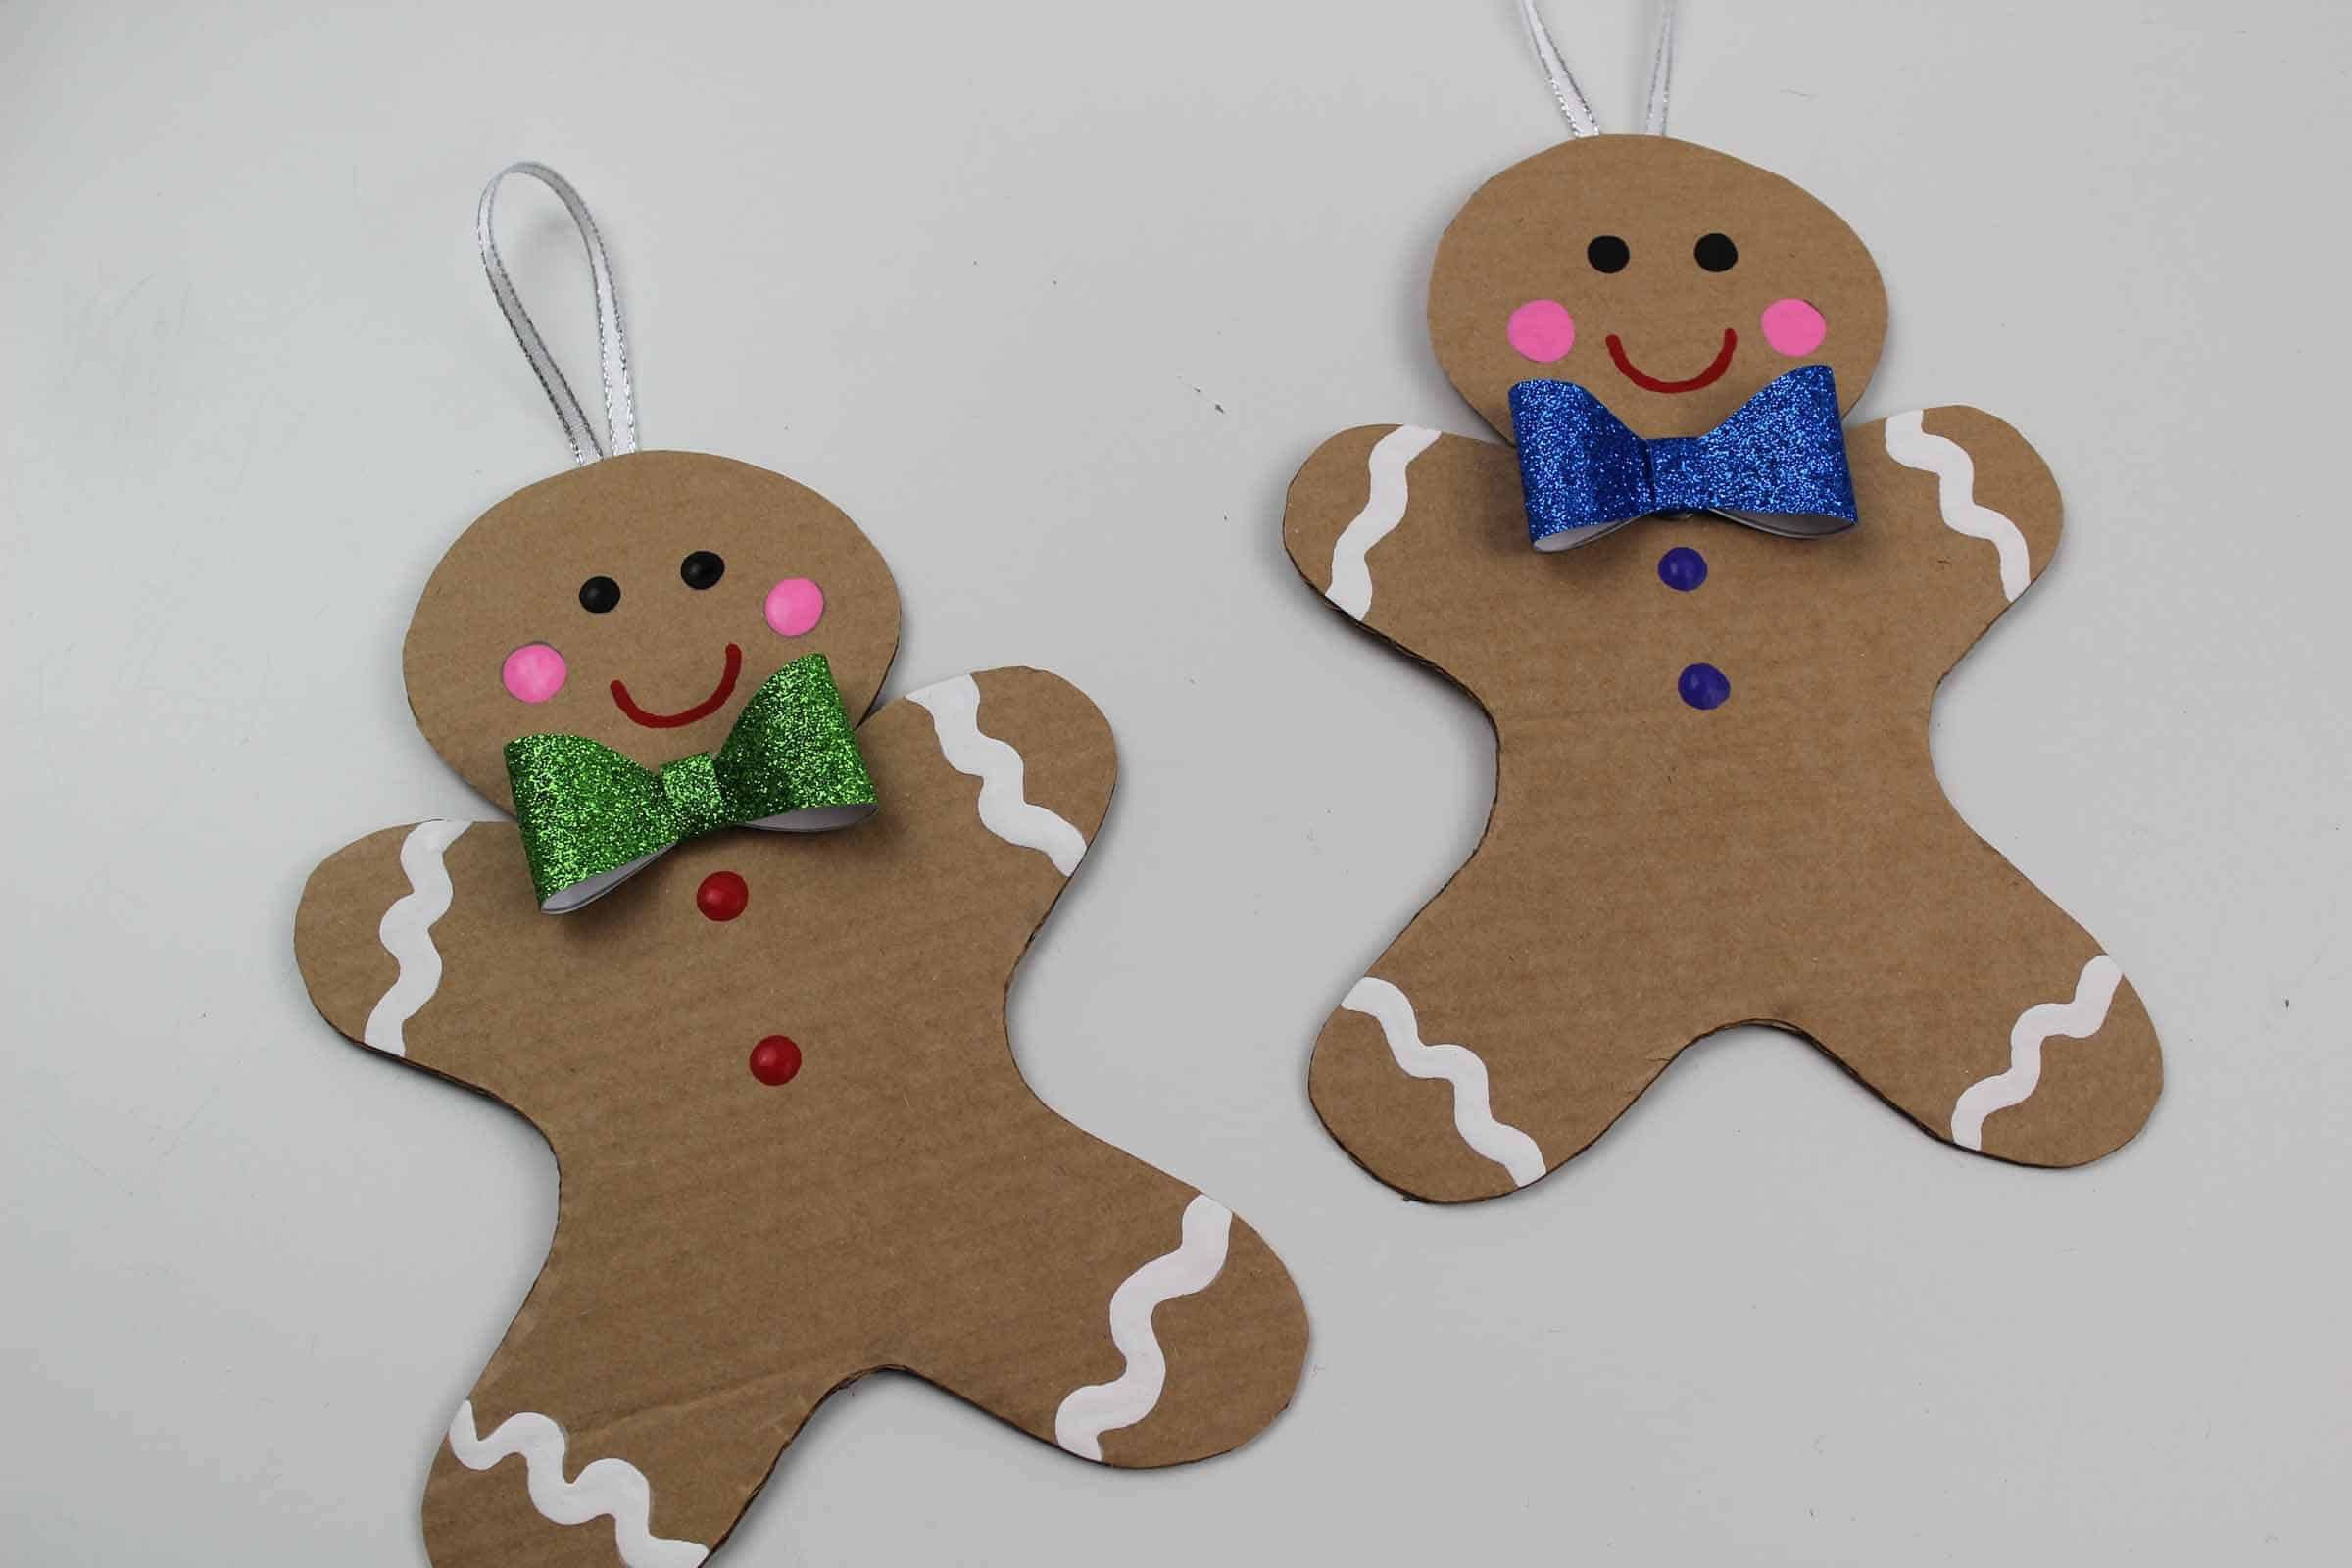 Finished gingerbread man decoration